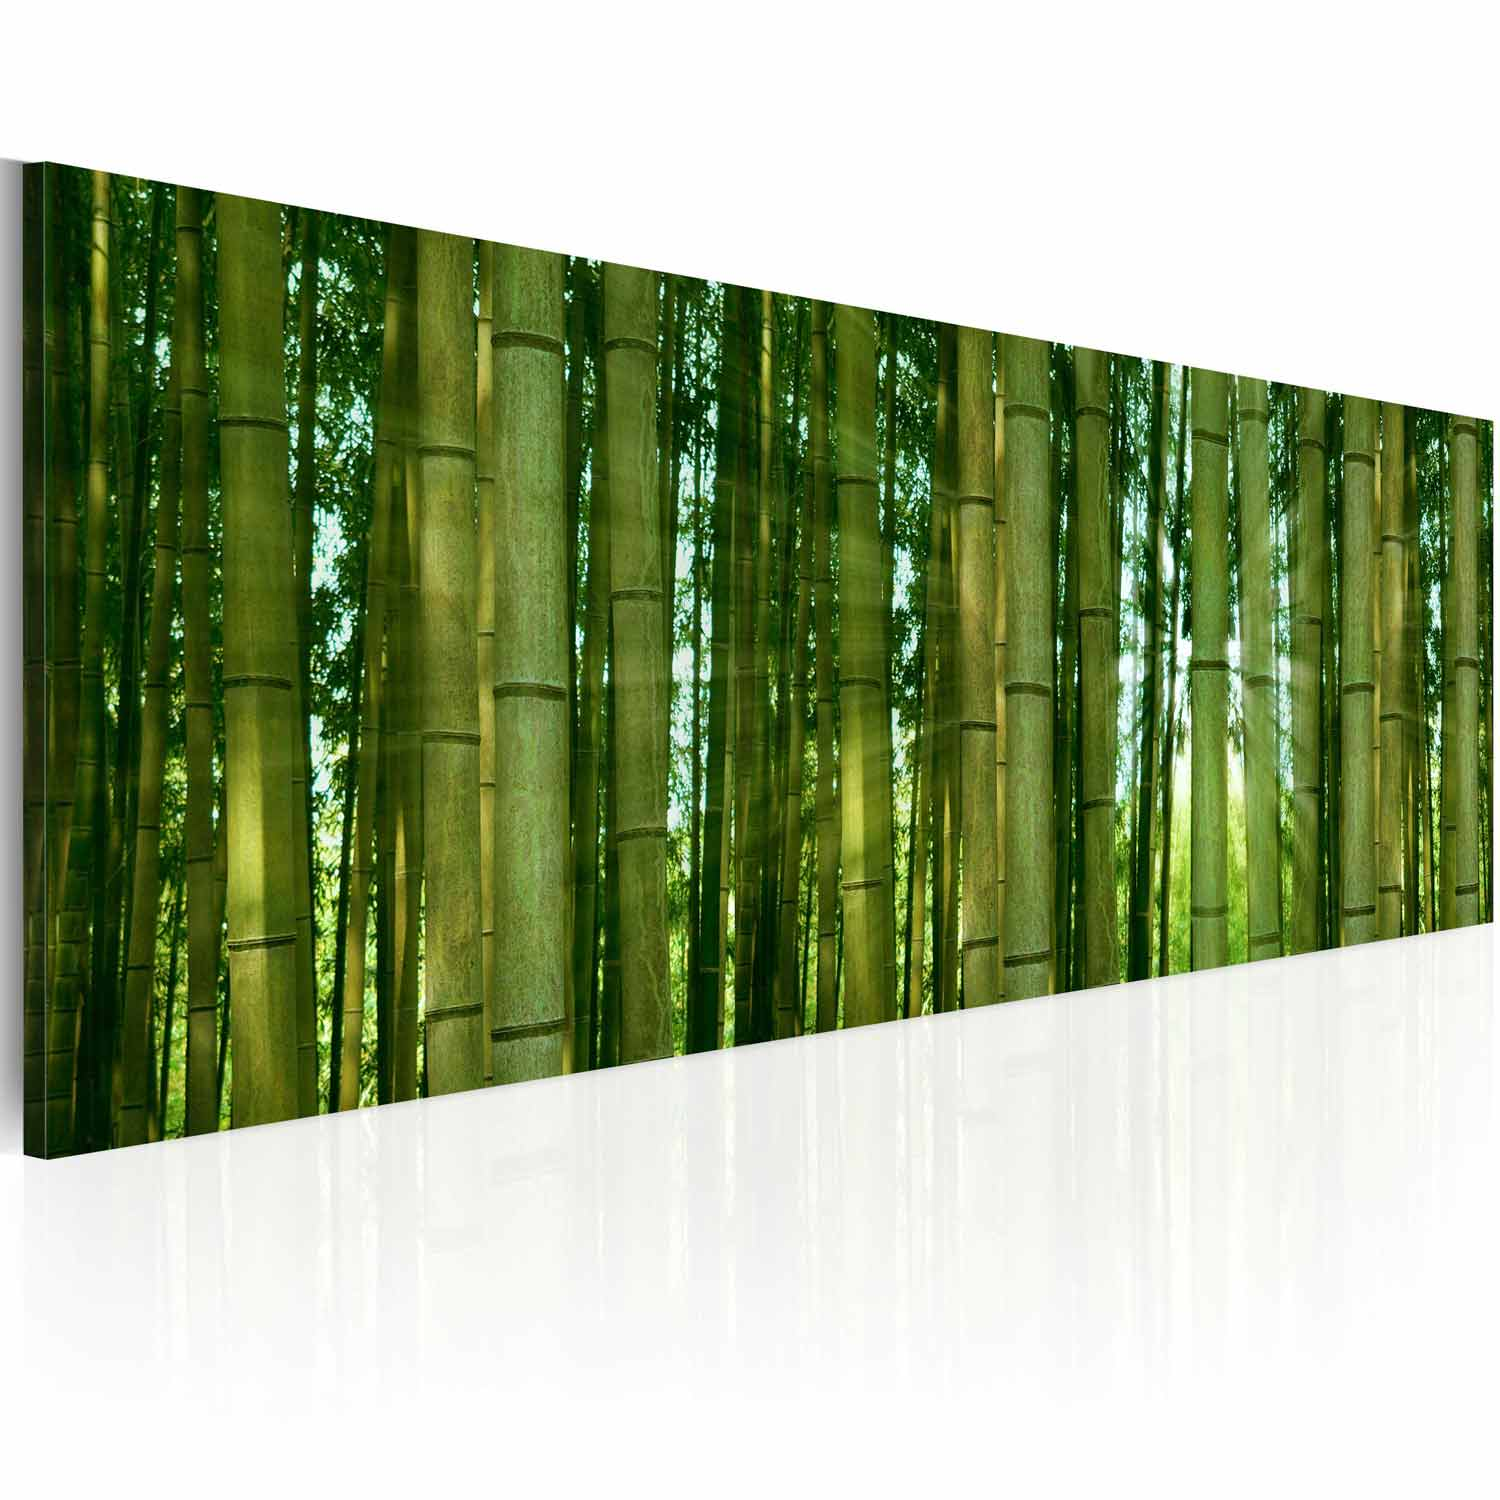 Image of   ARTGEIST Bamboo in the sunshine billede - grøn canvas print (40x120)